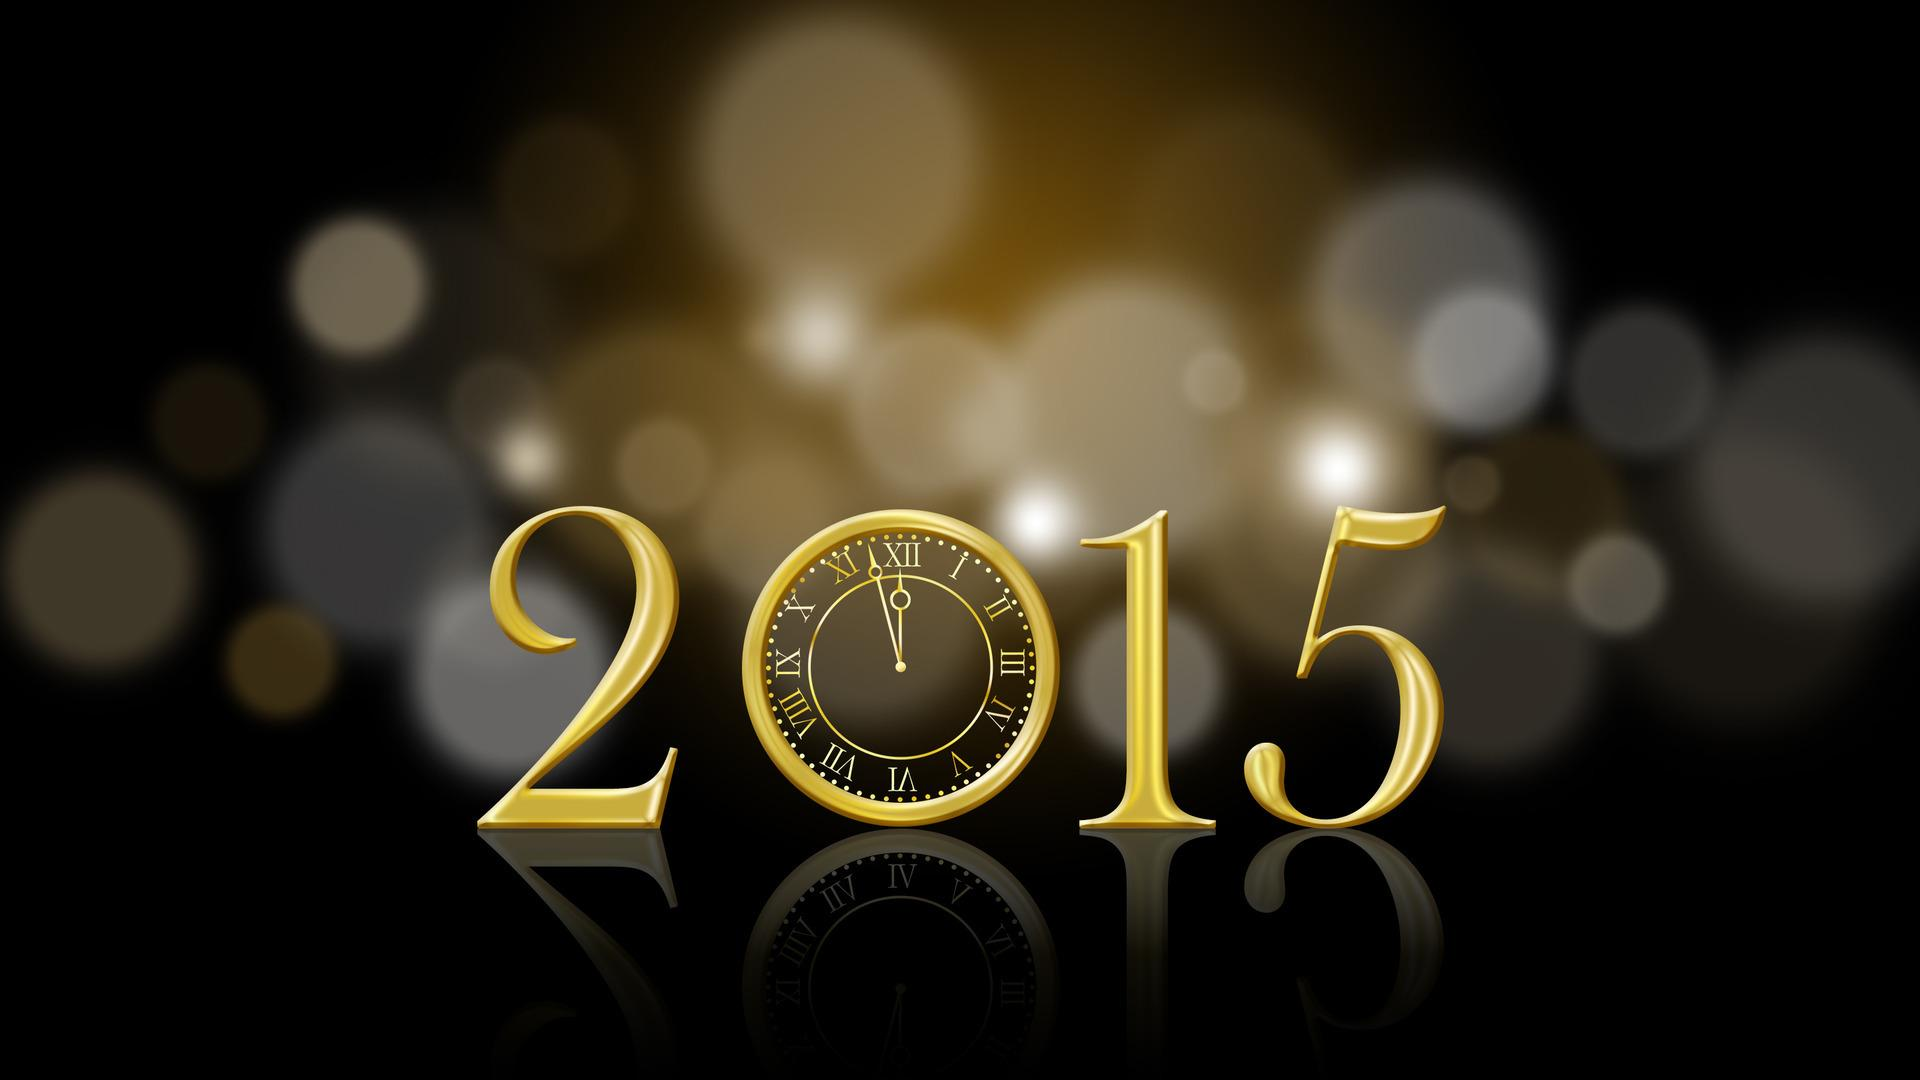 Free download Happy New Year 2015 HD Wallpaper Android Stock